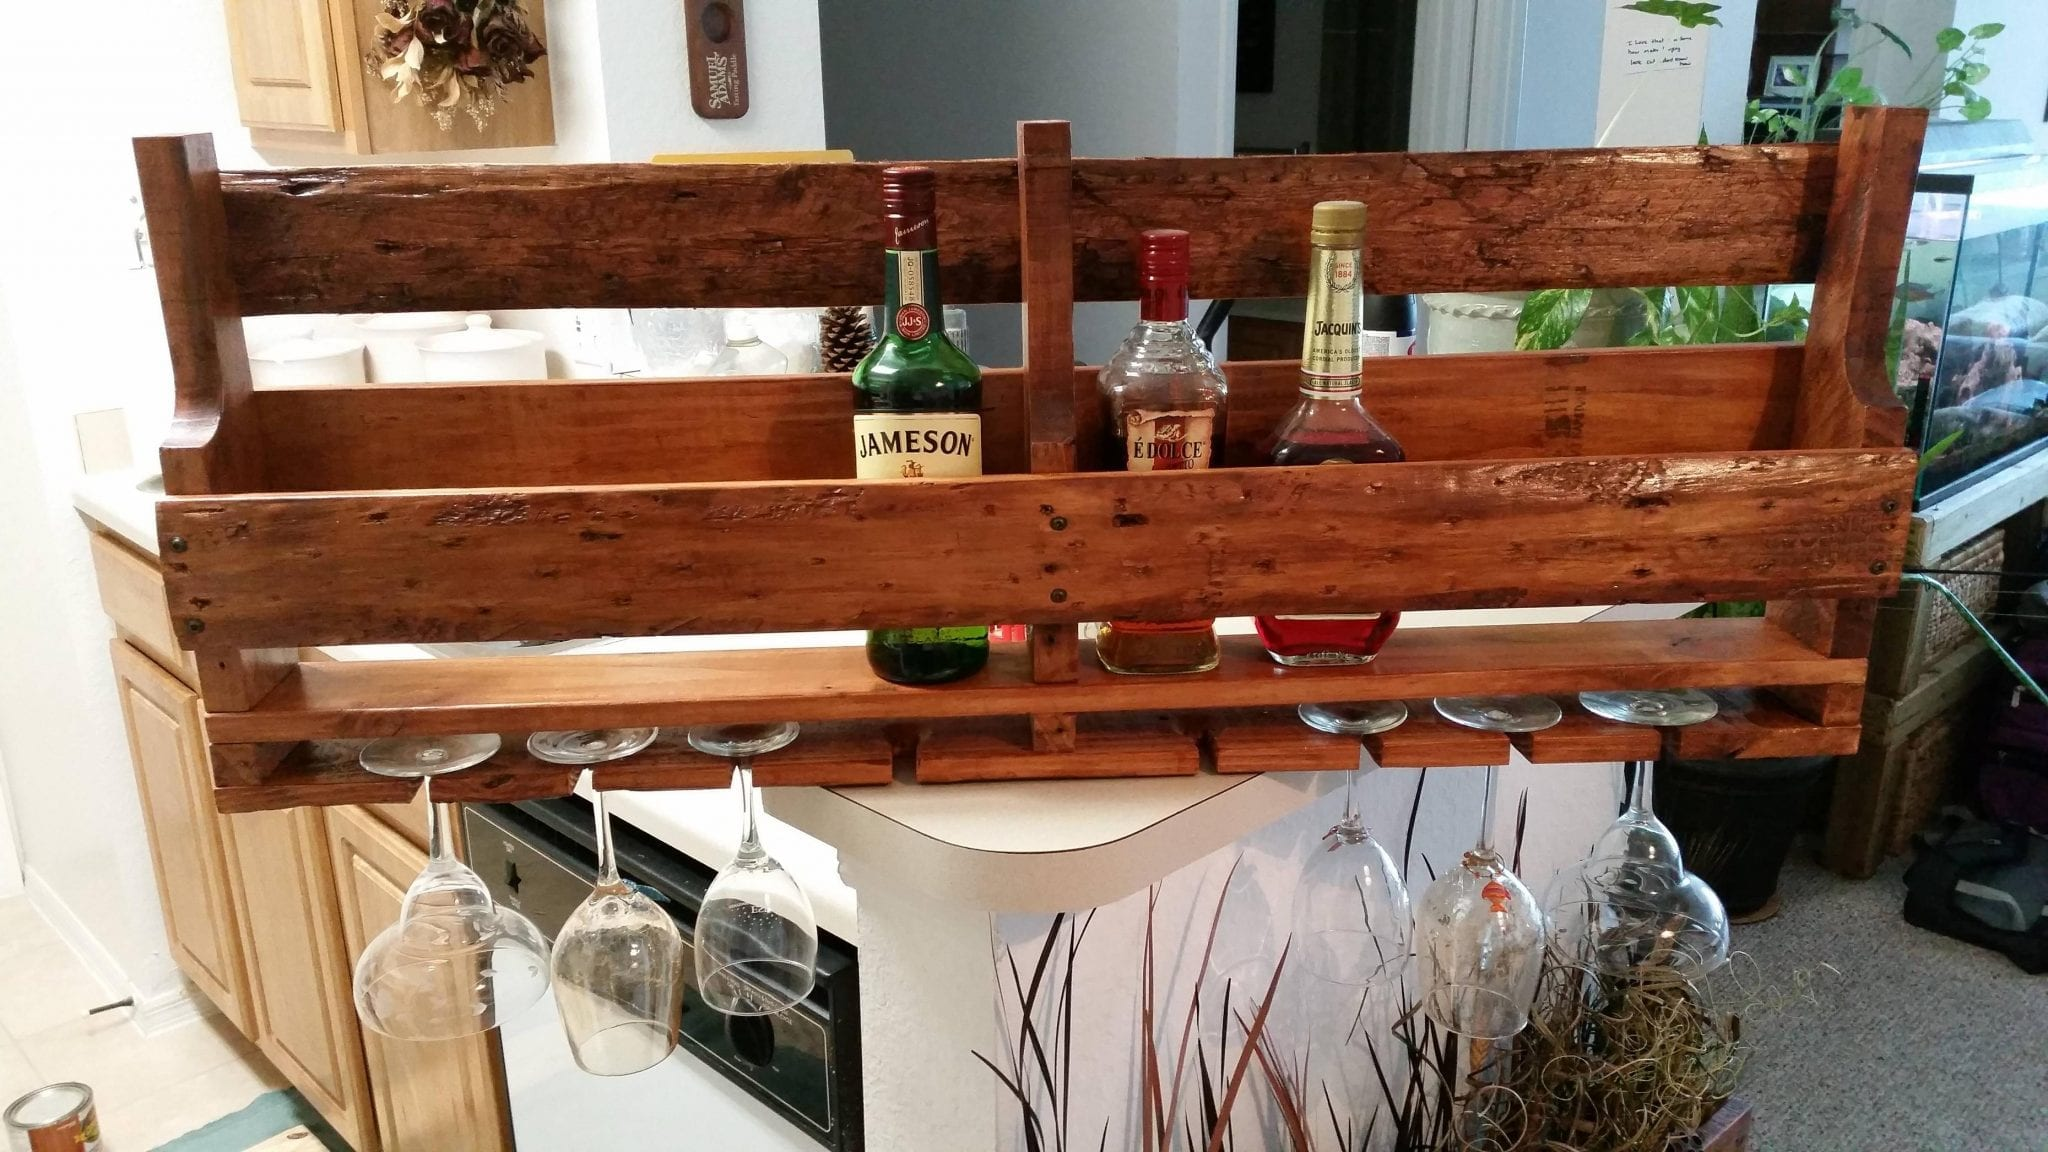 1 Wooden Stand For Keeping Glass And Bottles